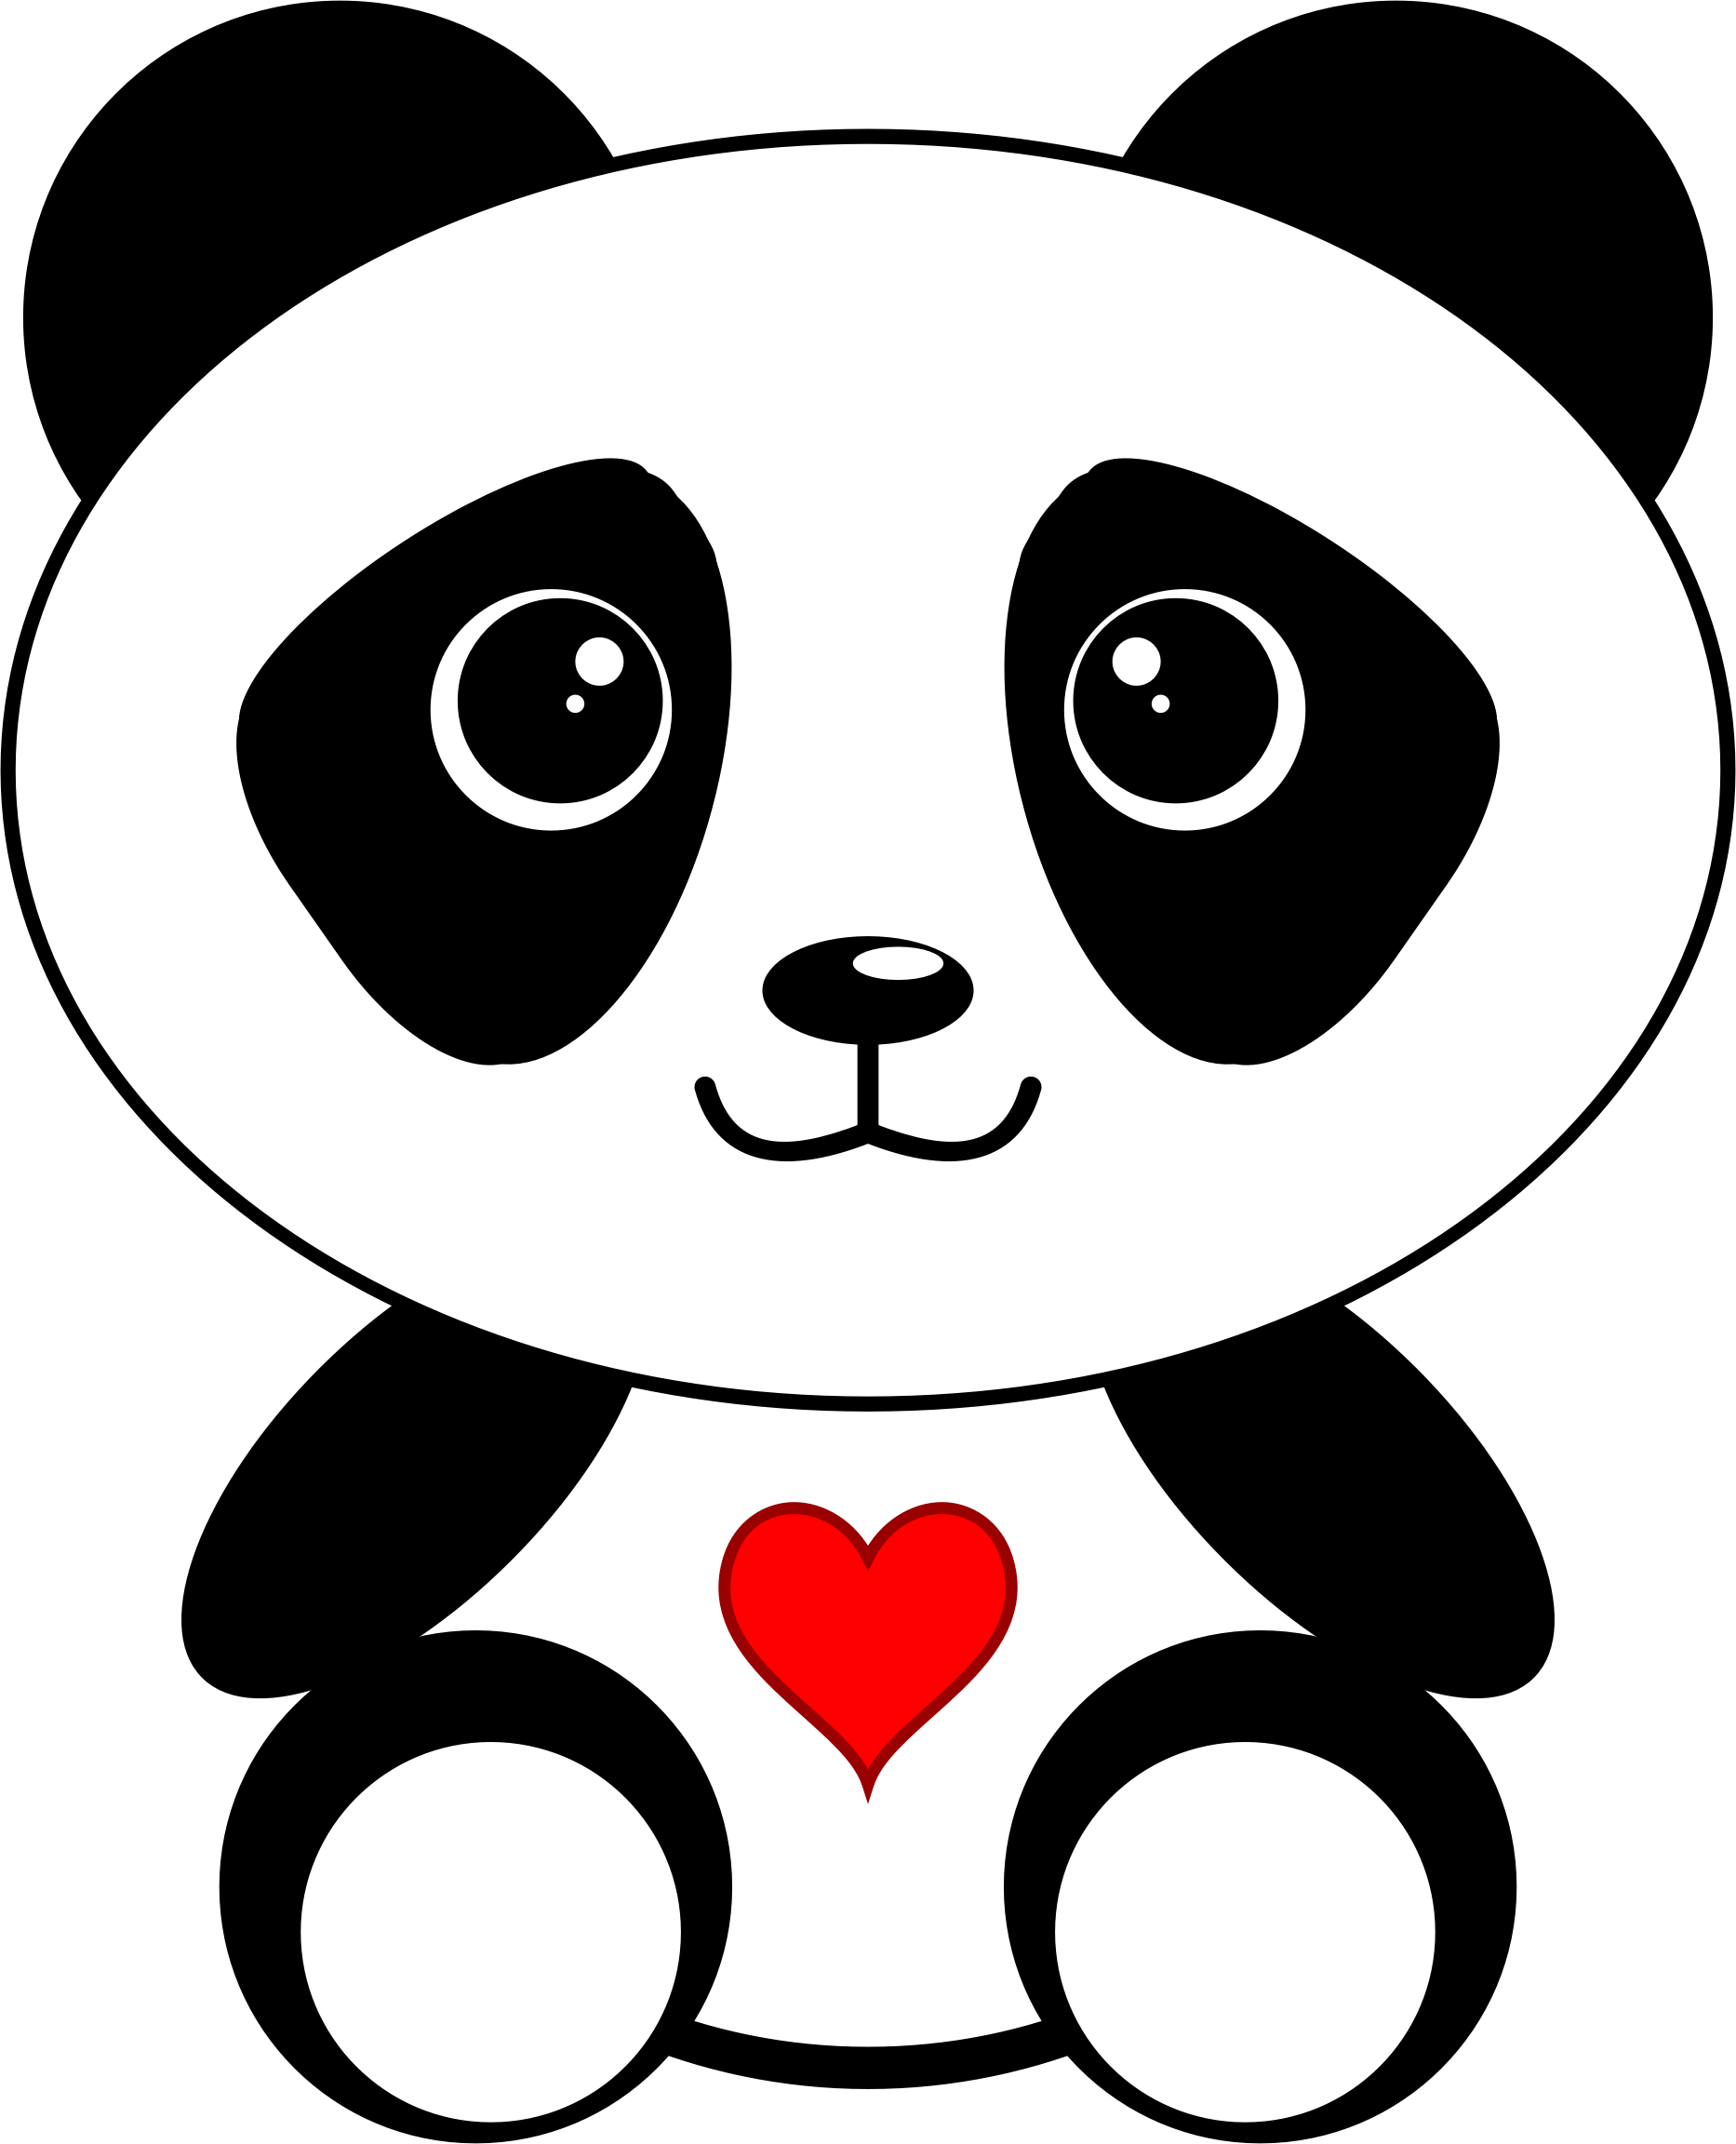 clipart panda with a heart black and white flower clip art free black and white flower clipart free to use